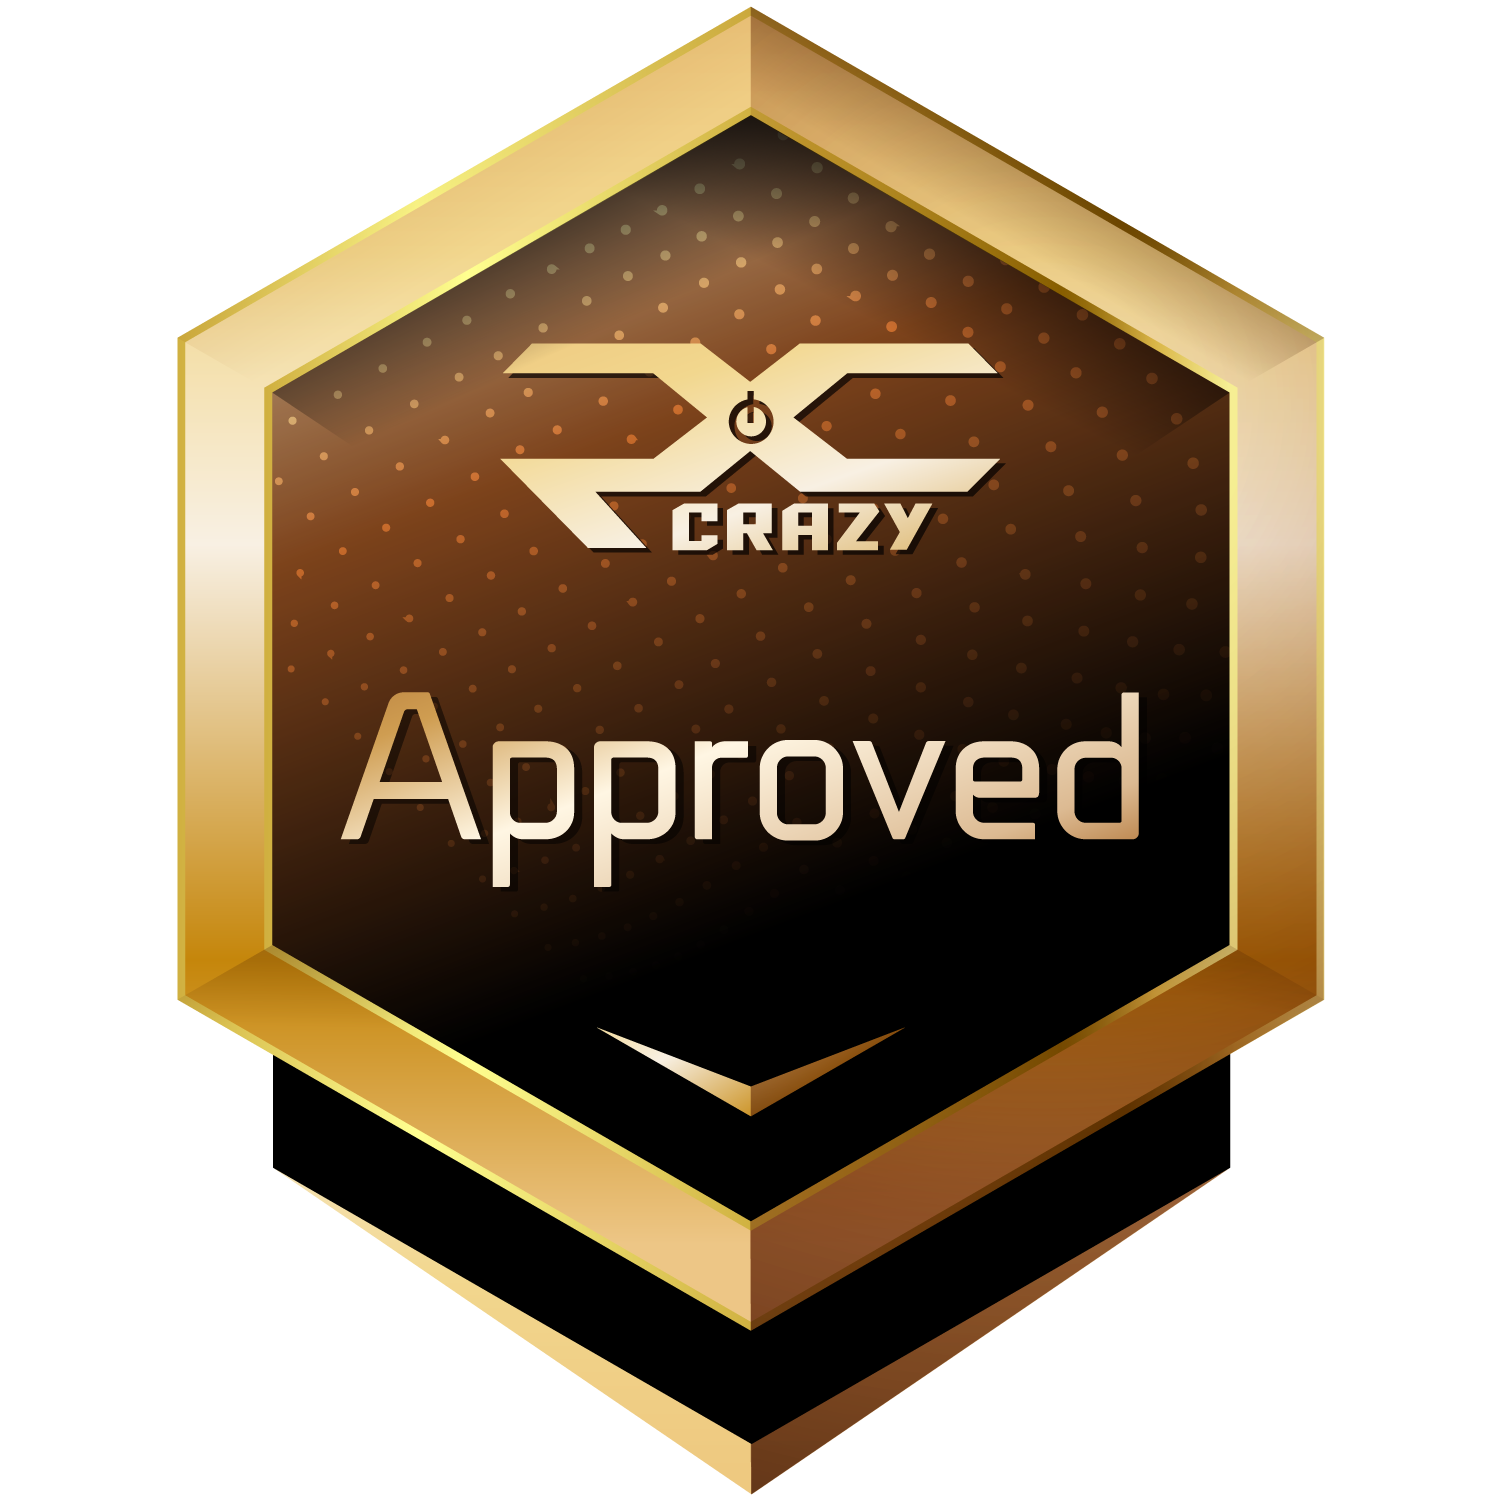 PC Crazy Approved